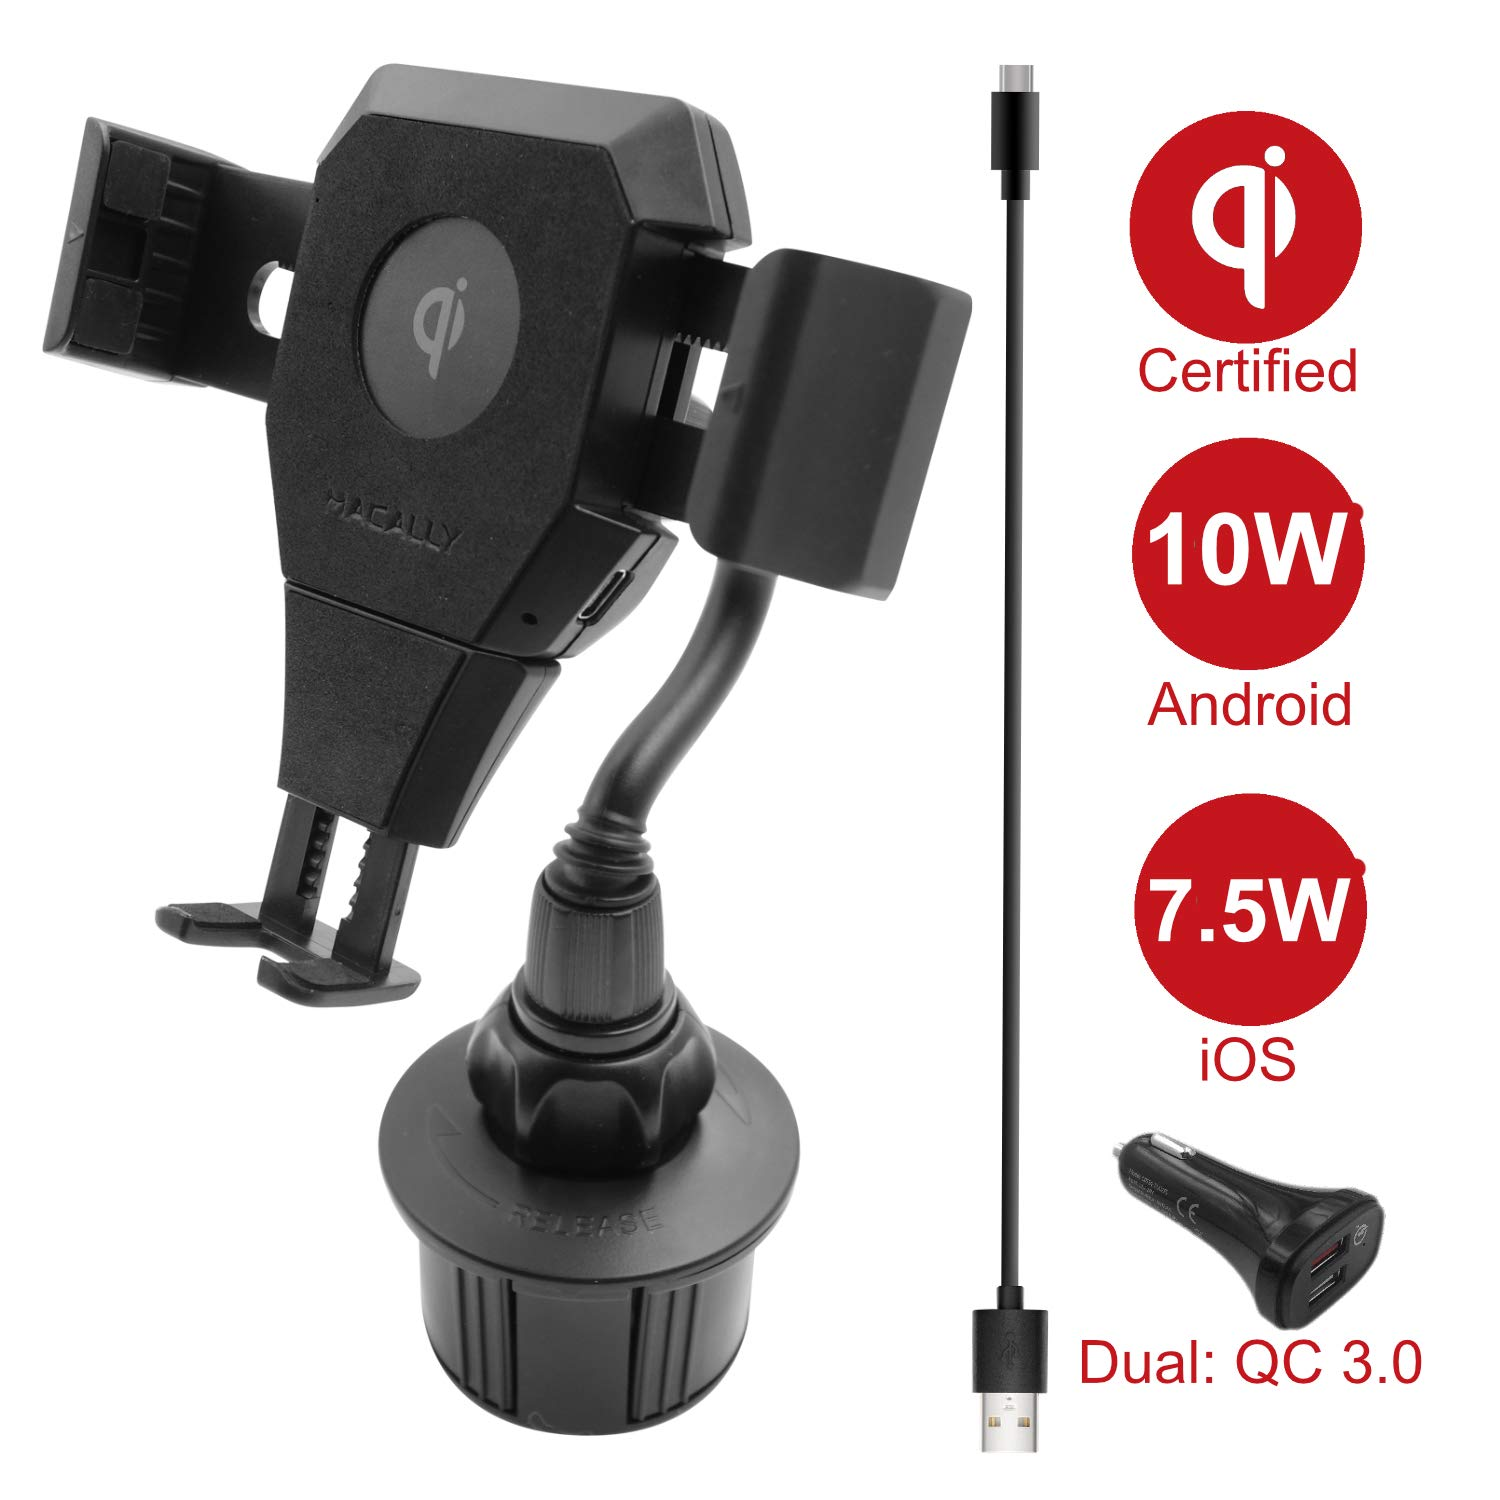 Macally Wireless Charging Car Mount, Cup Holder Phone Mount Charger Compatible with Fast Charging Qi 10W 7.5W Smartphones for Apple iPhone Xs XS Max XR X 8 8 Plus Samsung Galaxy S10+ S10e S9 S8 Note by Macally